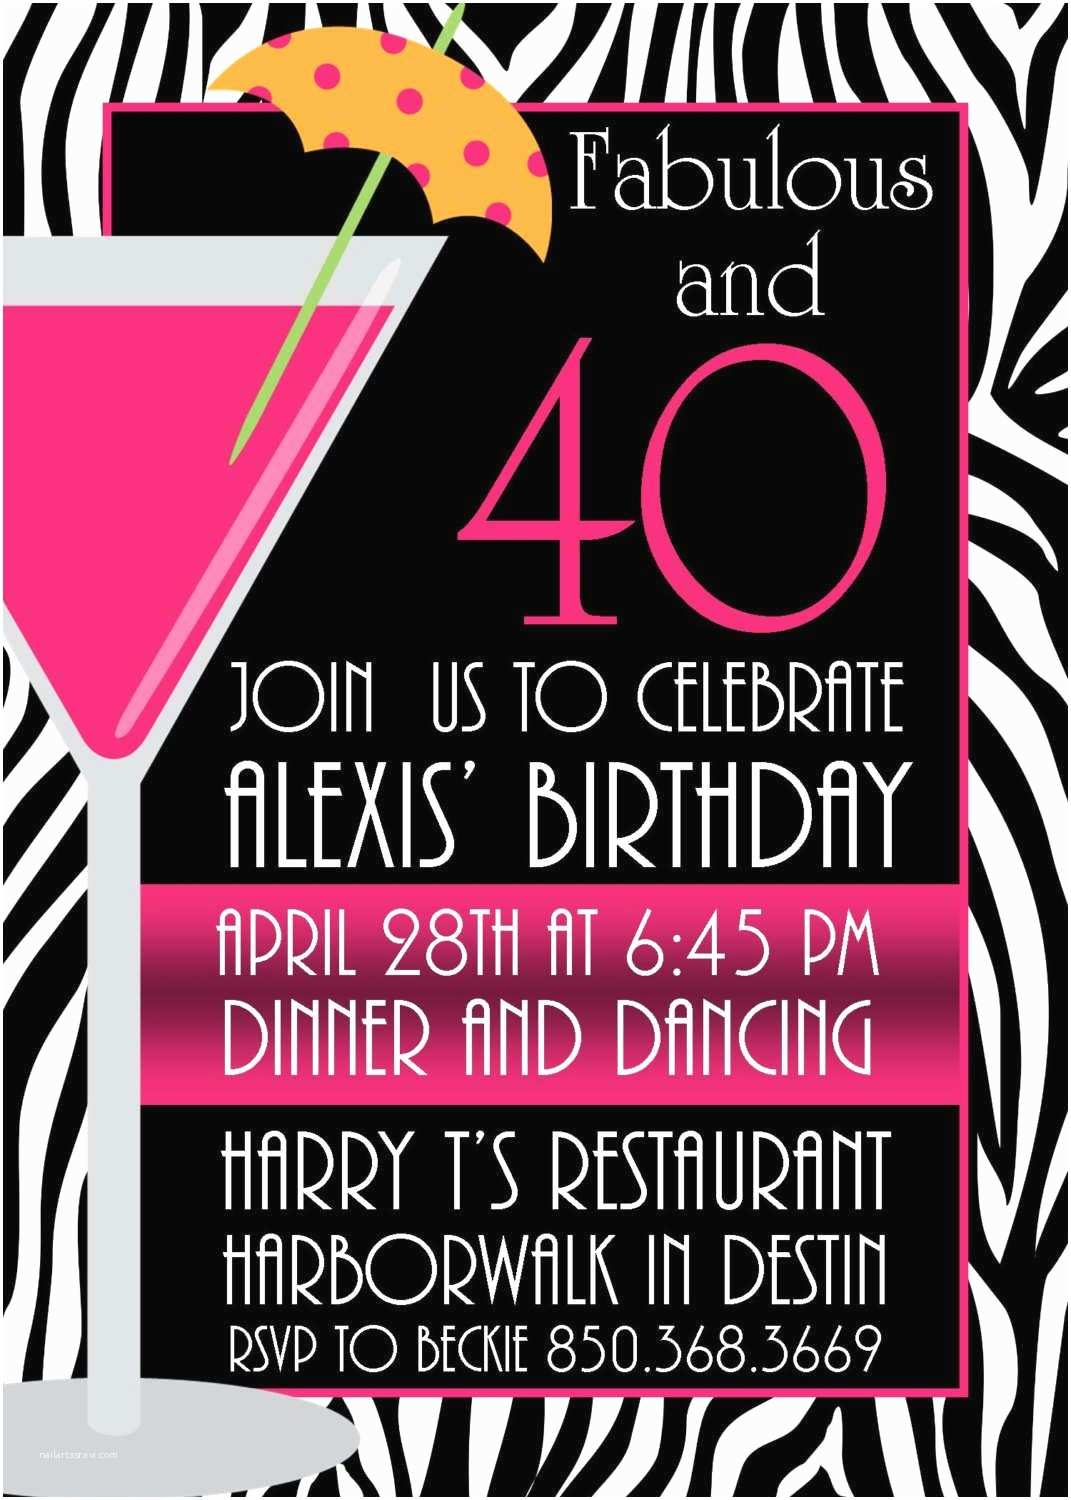 Free Birthday Party Invitations Pictures Of Stylish Women for 40th Birthday Invitation